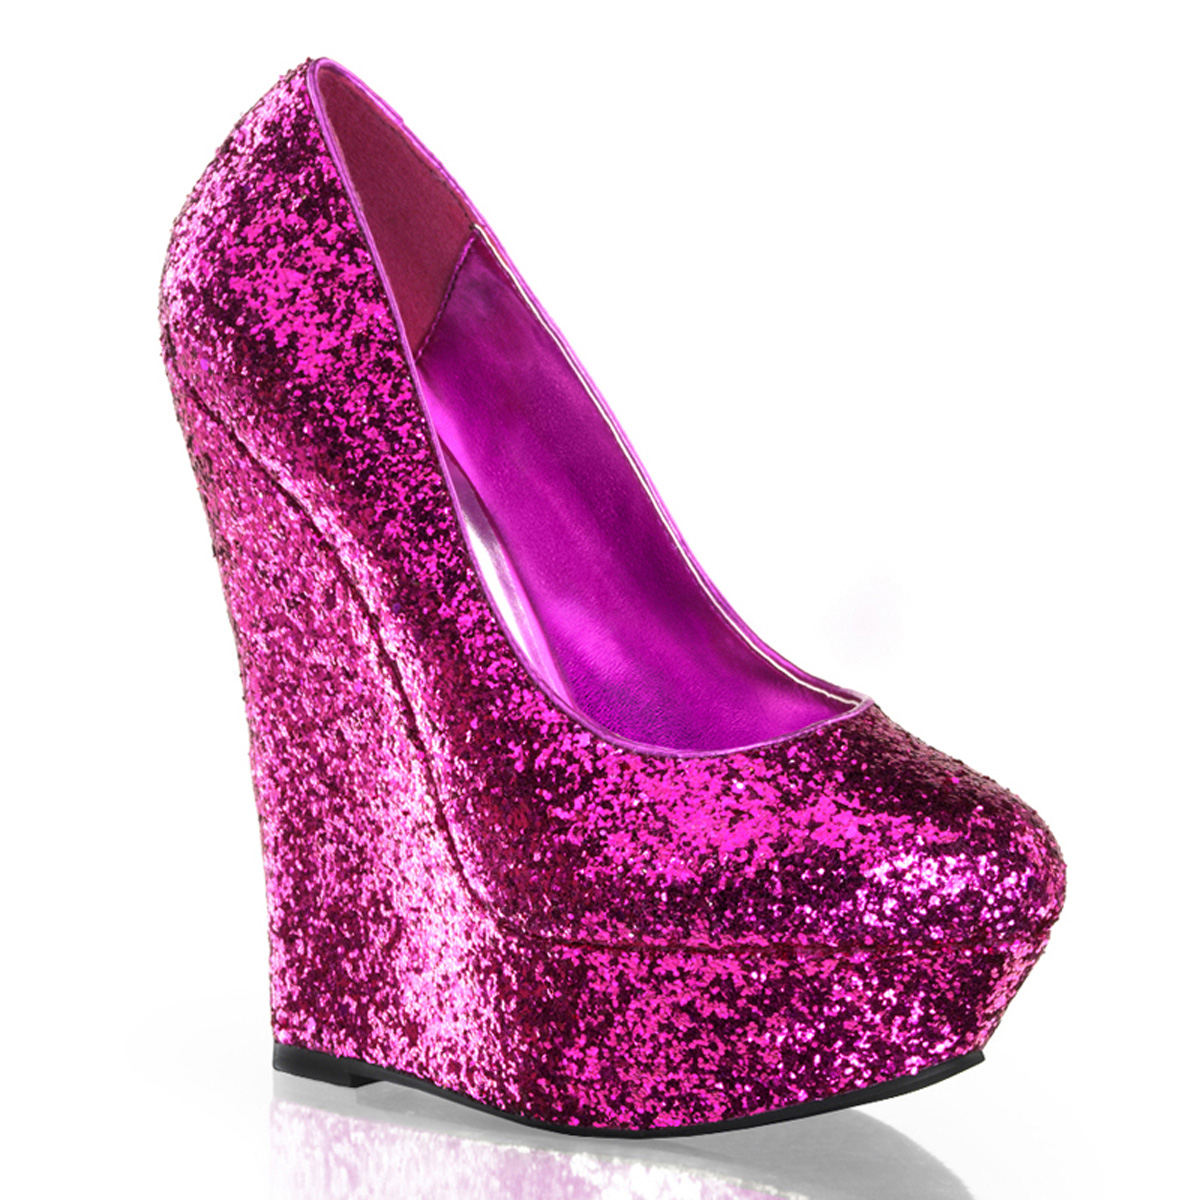 Pleaser Luster-20 Womens Sexy Hot Pink Glitter Wedges 6 Inch High Heels Wedge Pumps Club Shoes at Sears.com